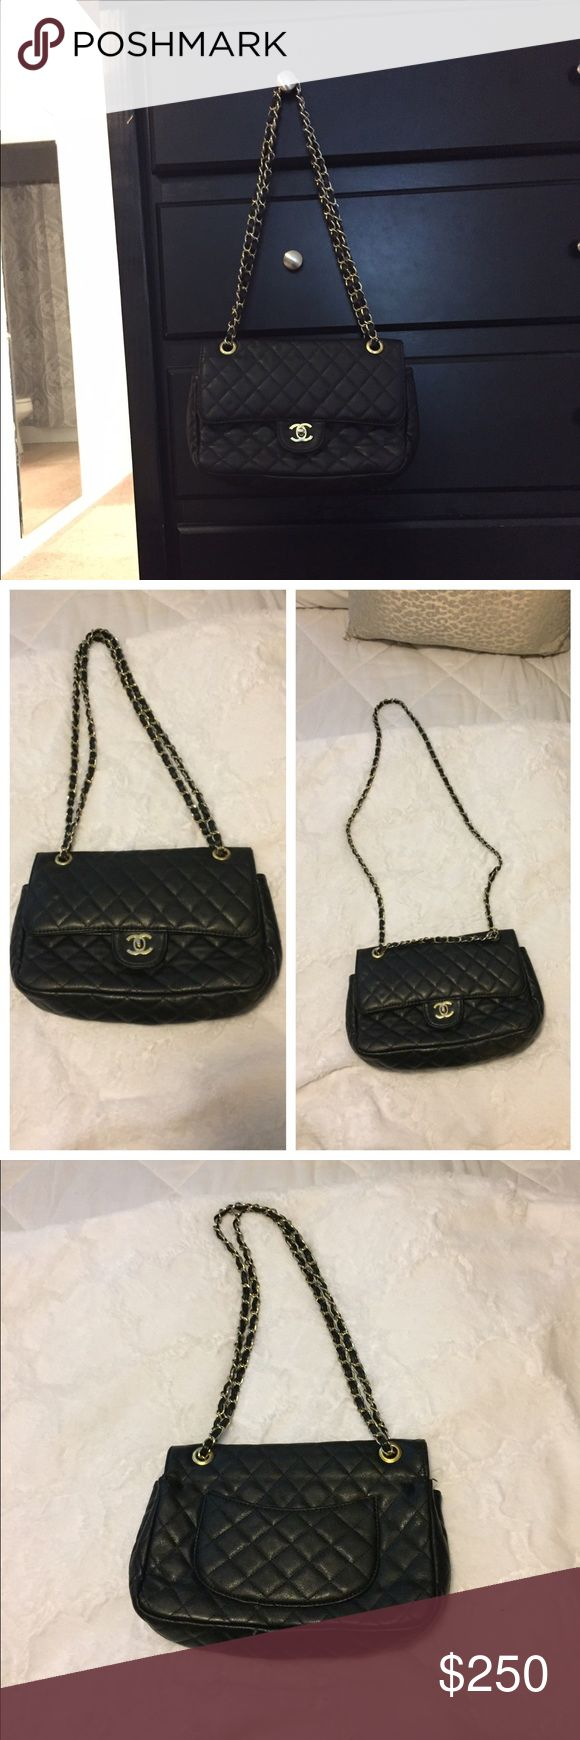 Chanel purse Great condition. Only problem is the clasp on inside (see pics) is a little broken but still works great! Just needs a little screw to fix it! It's been broken for about a year and I've still used the purse with no problem at all! Gold has rubbed off a little bit on the strap and looks a little bit silver now. This is such a great purse and still works and looks great!! Price reflects it all so please don't ask the obvious! **already wrapped up and ready to ship today!** Bags…